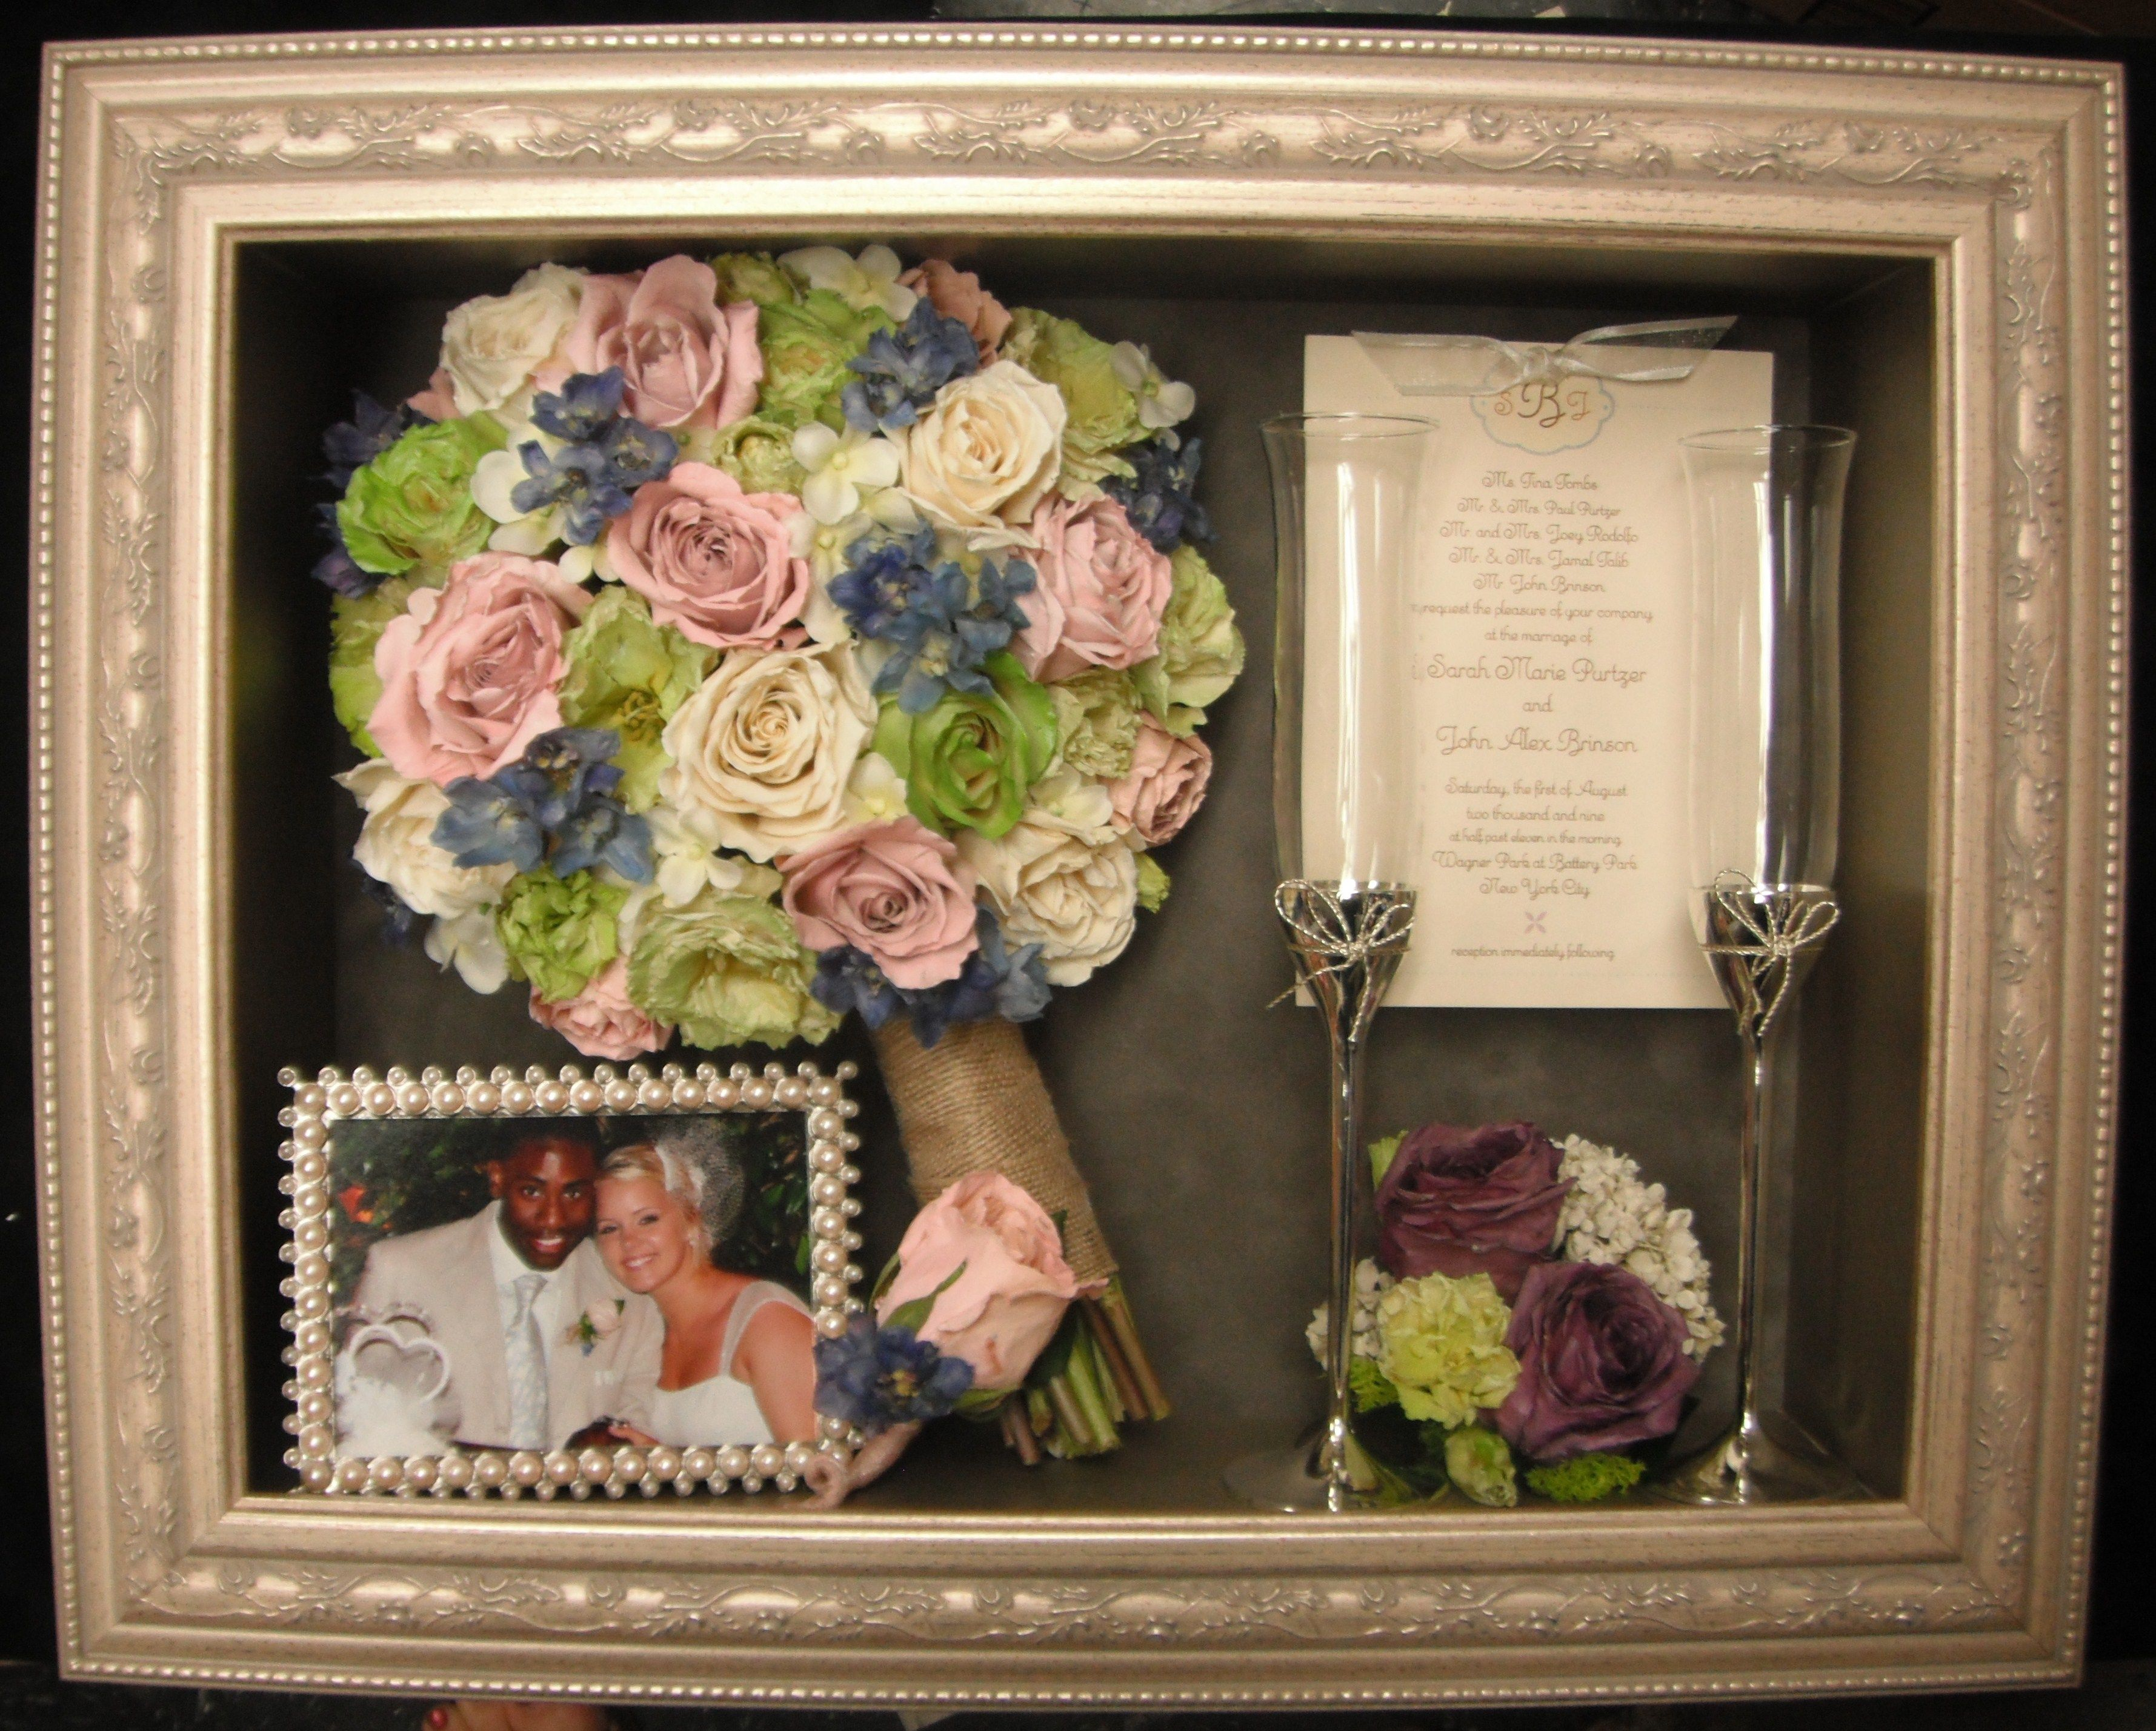 freeze dried wedding bouquet flowers in our custom shadow box. Black Bedroom Furniture Sets. Home Design Ideas